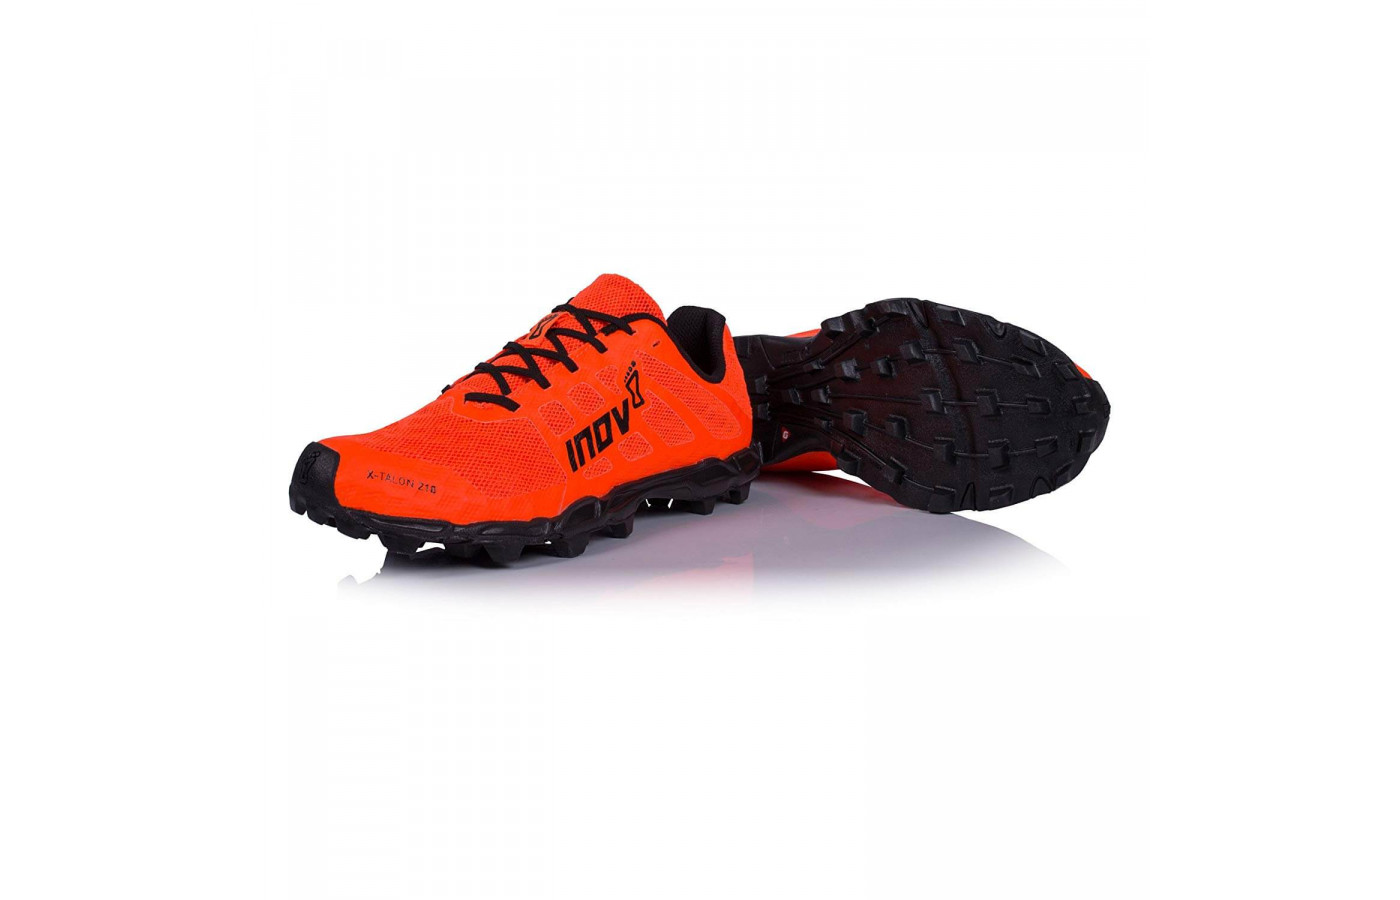 Inov-8 X-Talon 210 Pair Bottom